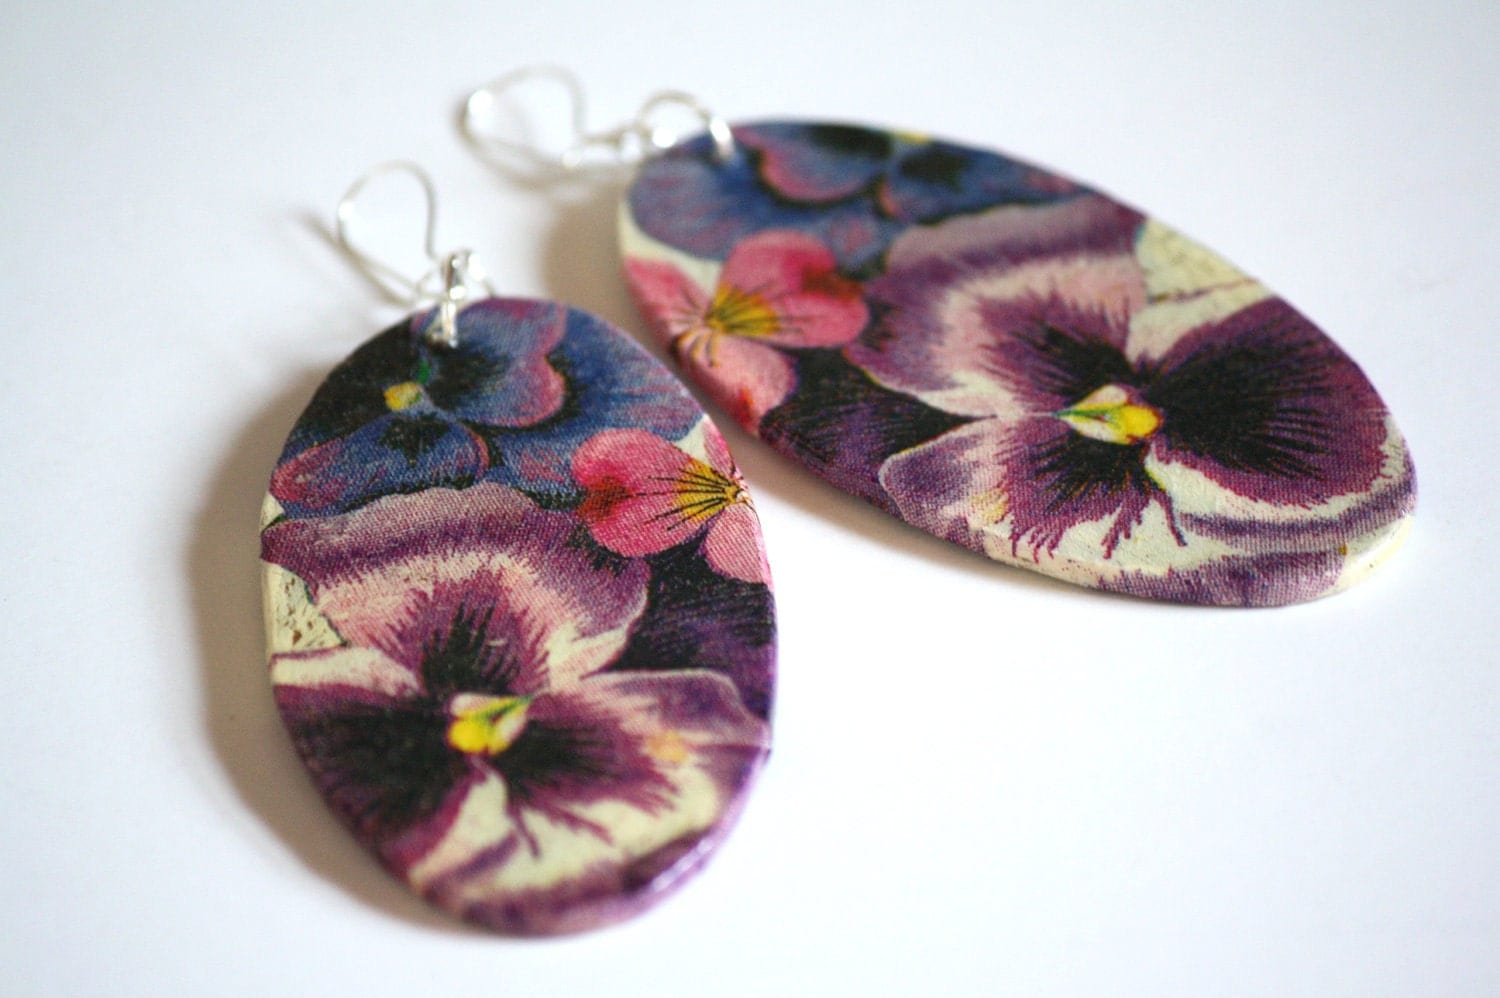 Decoupage purple pansies earrings, sterling silver, handmade, ooak, fashion, for her, gift idea, feminine, organic, original, christmas gif - CatHot